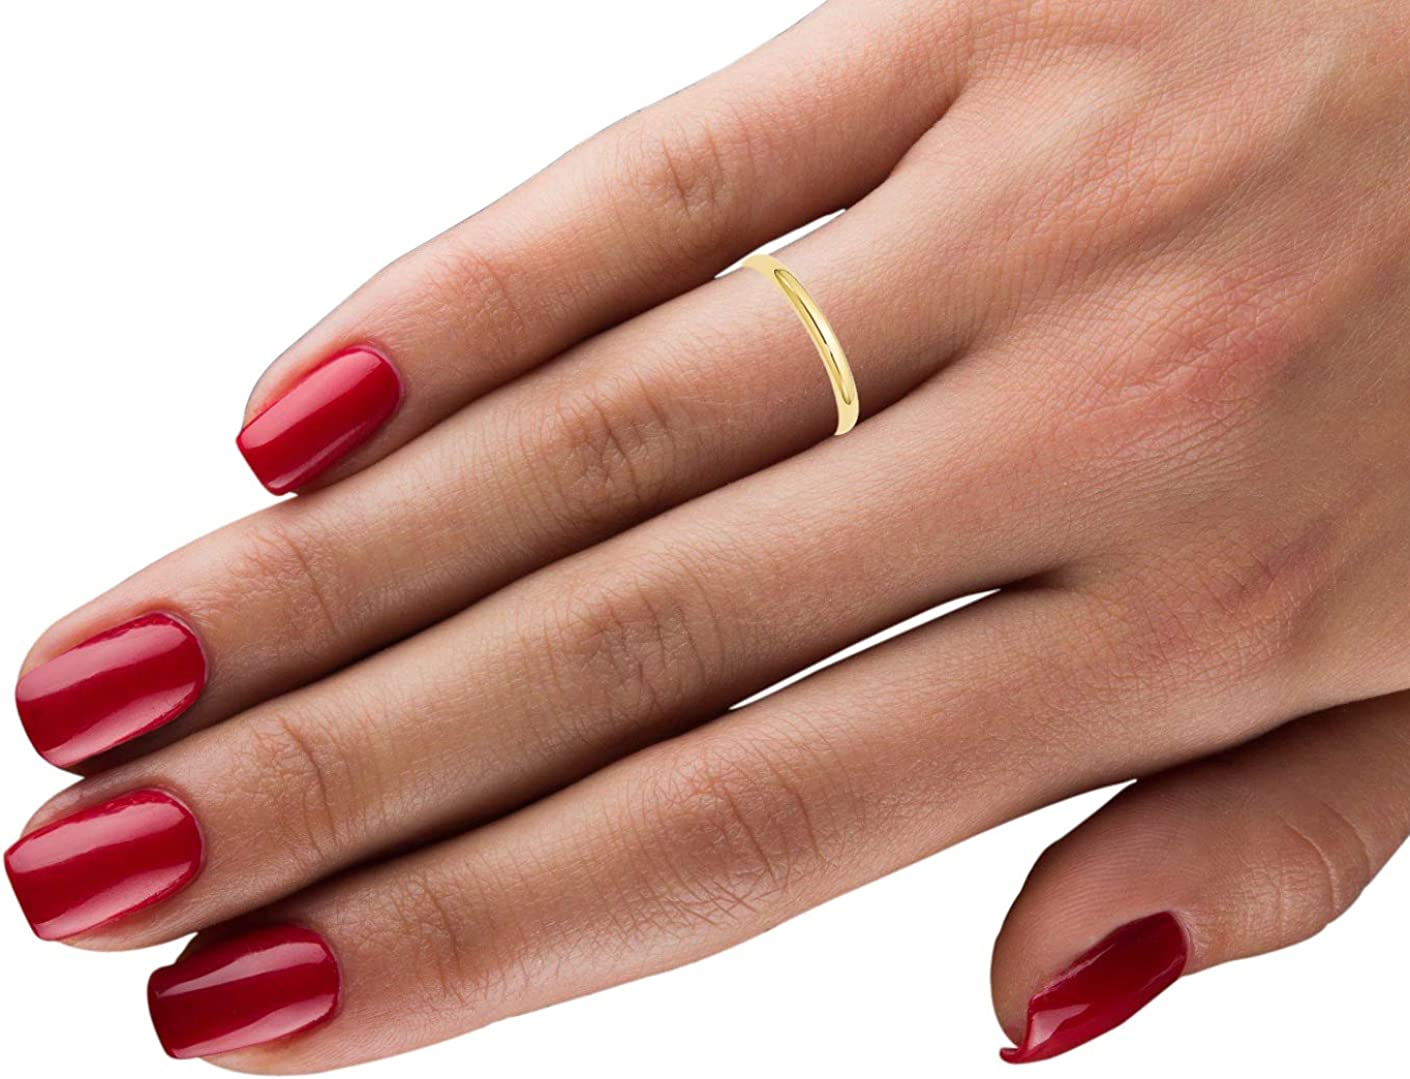 10k Yellow Gold 2.5mm Half Round Band Ring Size 9.5 Fine Jewelry Ideal Gifts For Women